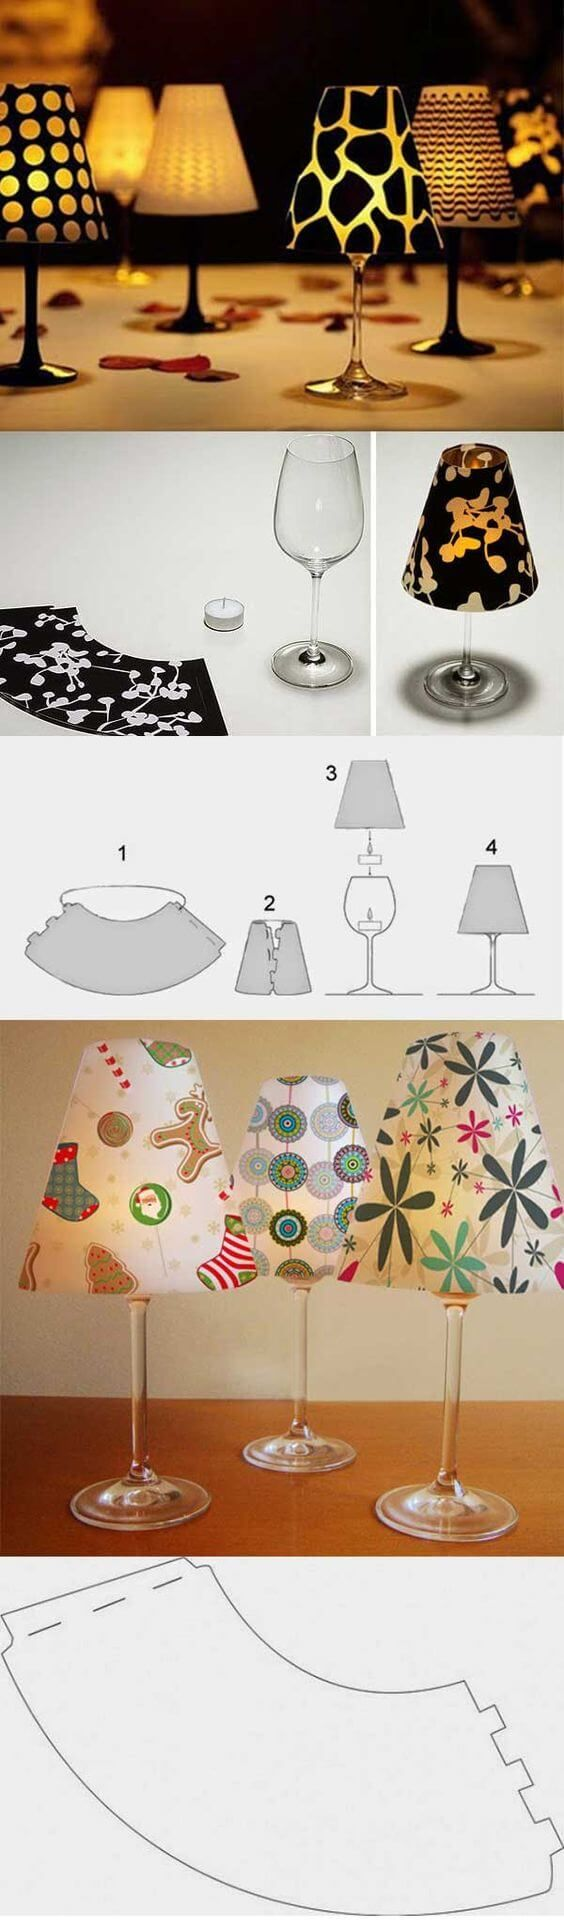 34 Of The Most Creative Diy Lamps And Lamp Shades